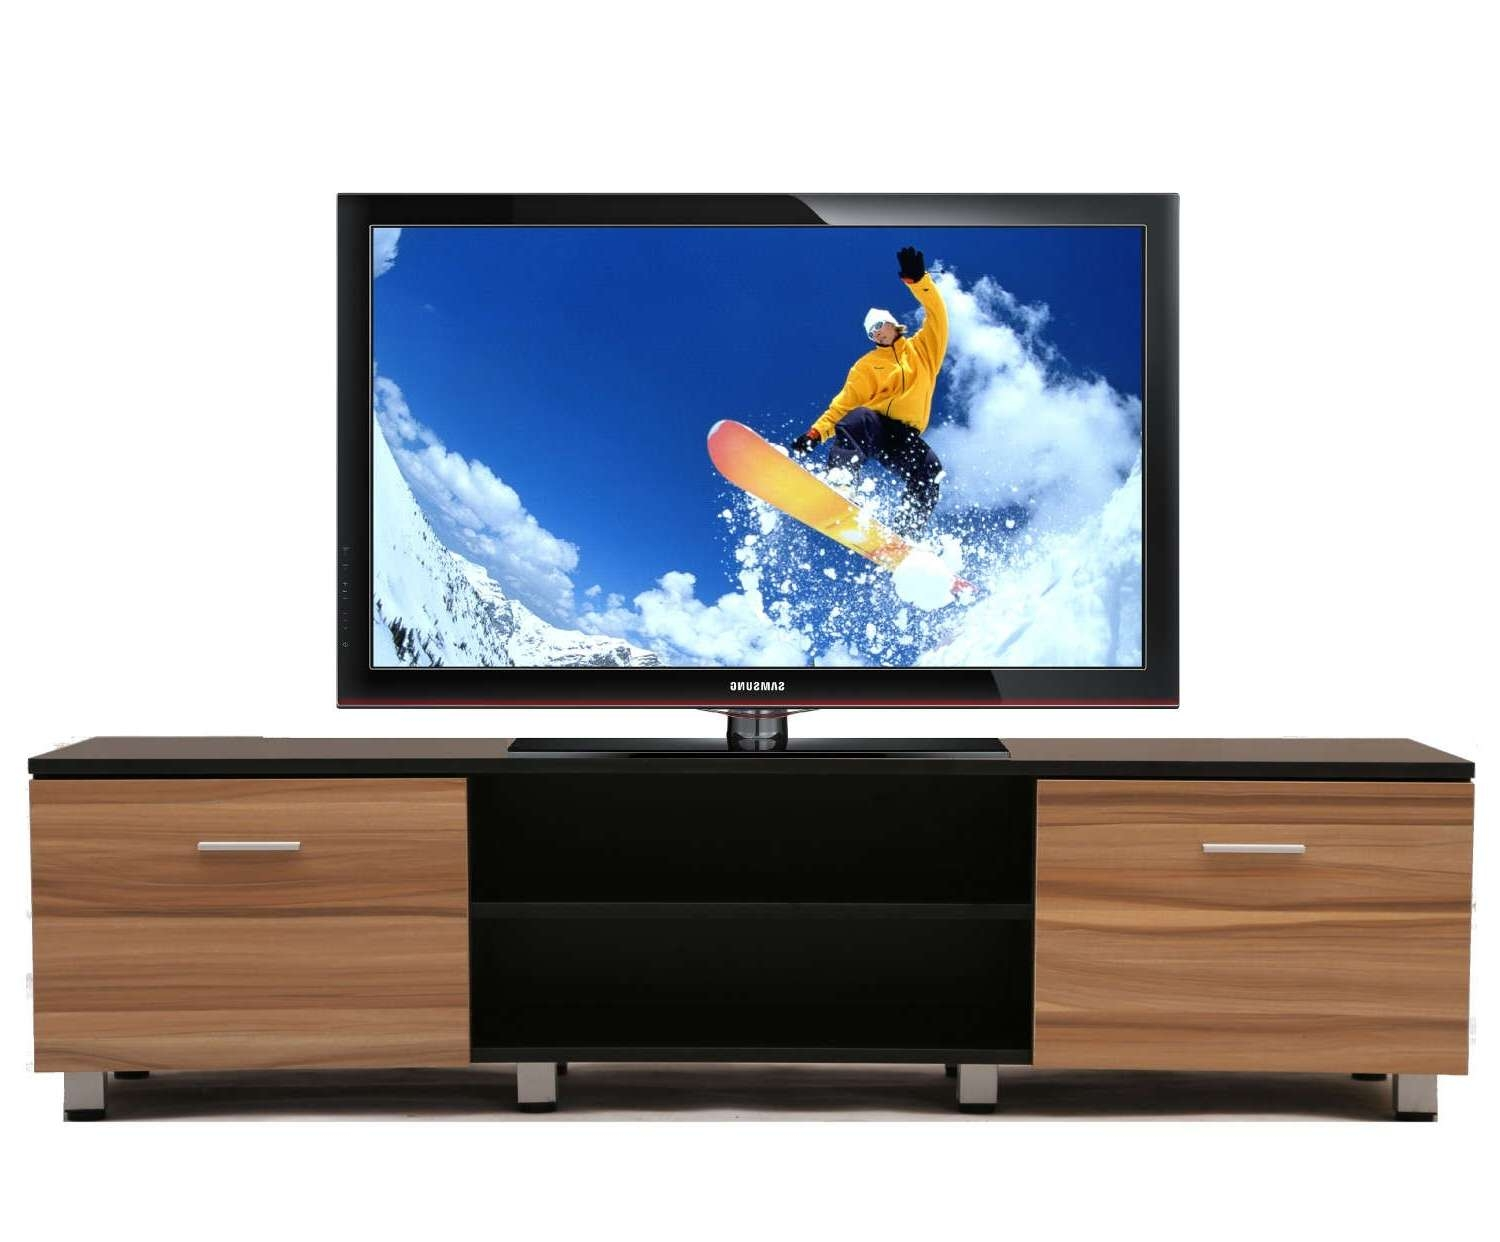 Wooden Samba Tv Unit Stand Cabinet | Furniturebox Within Wooden Tv Cabinets (View 15 of 20)